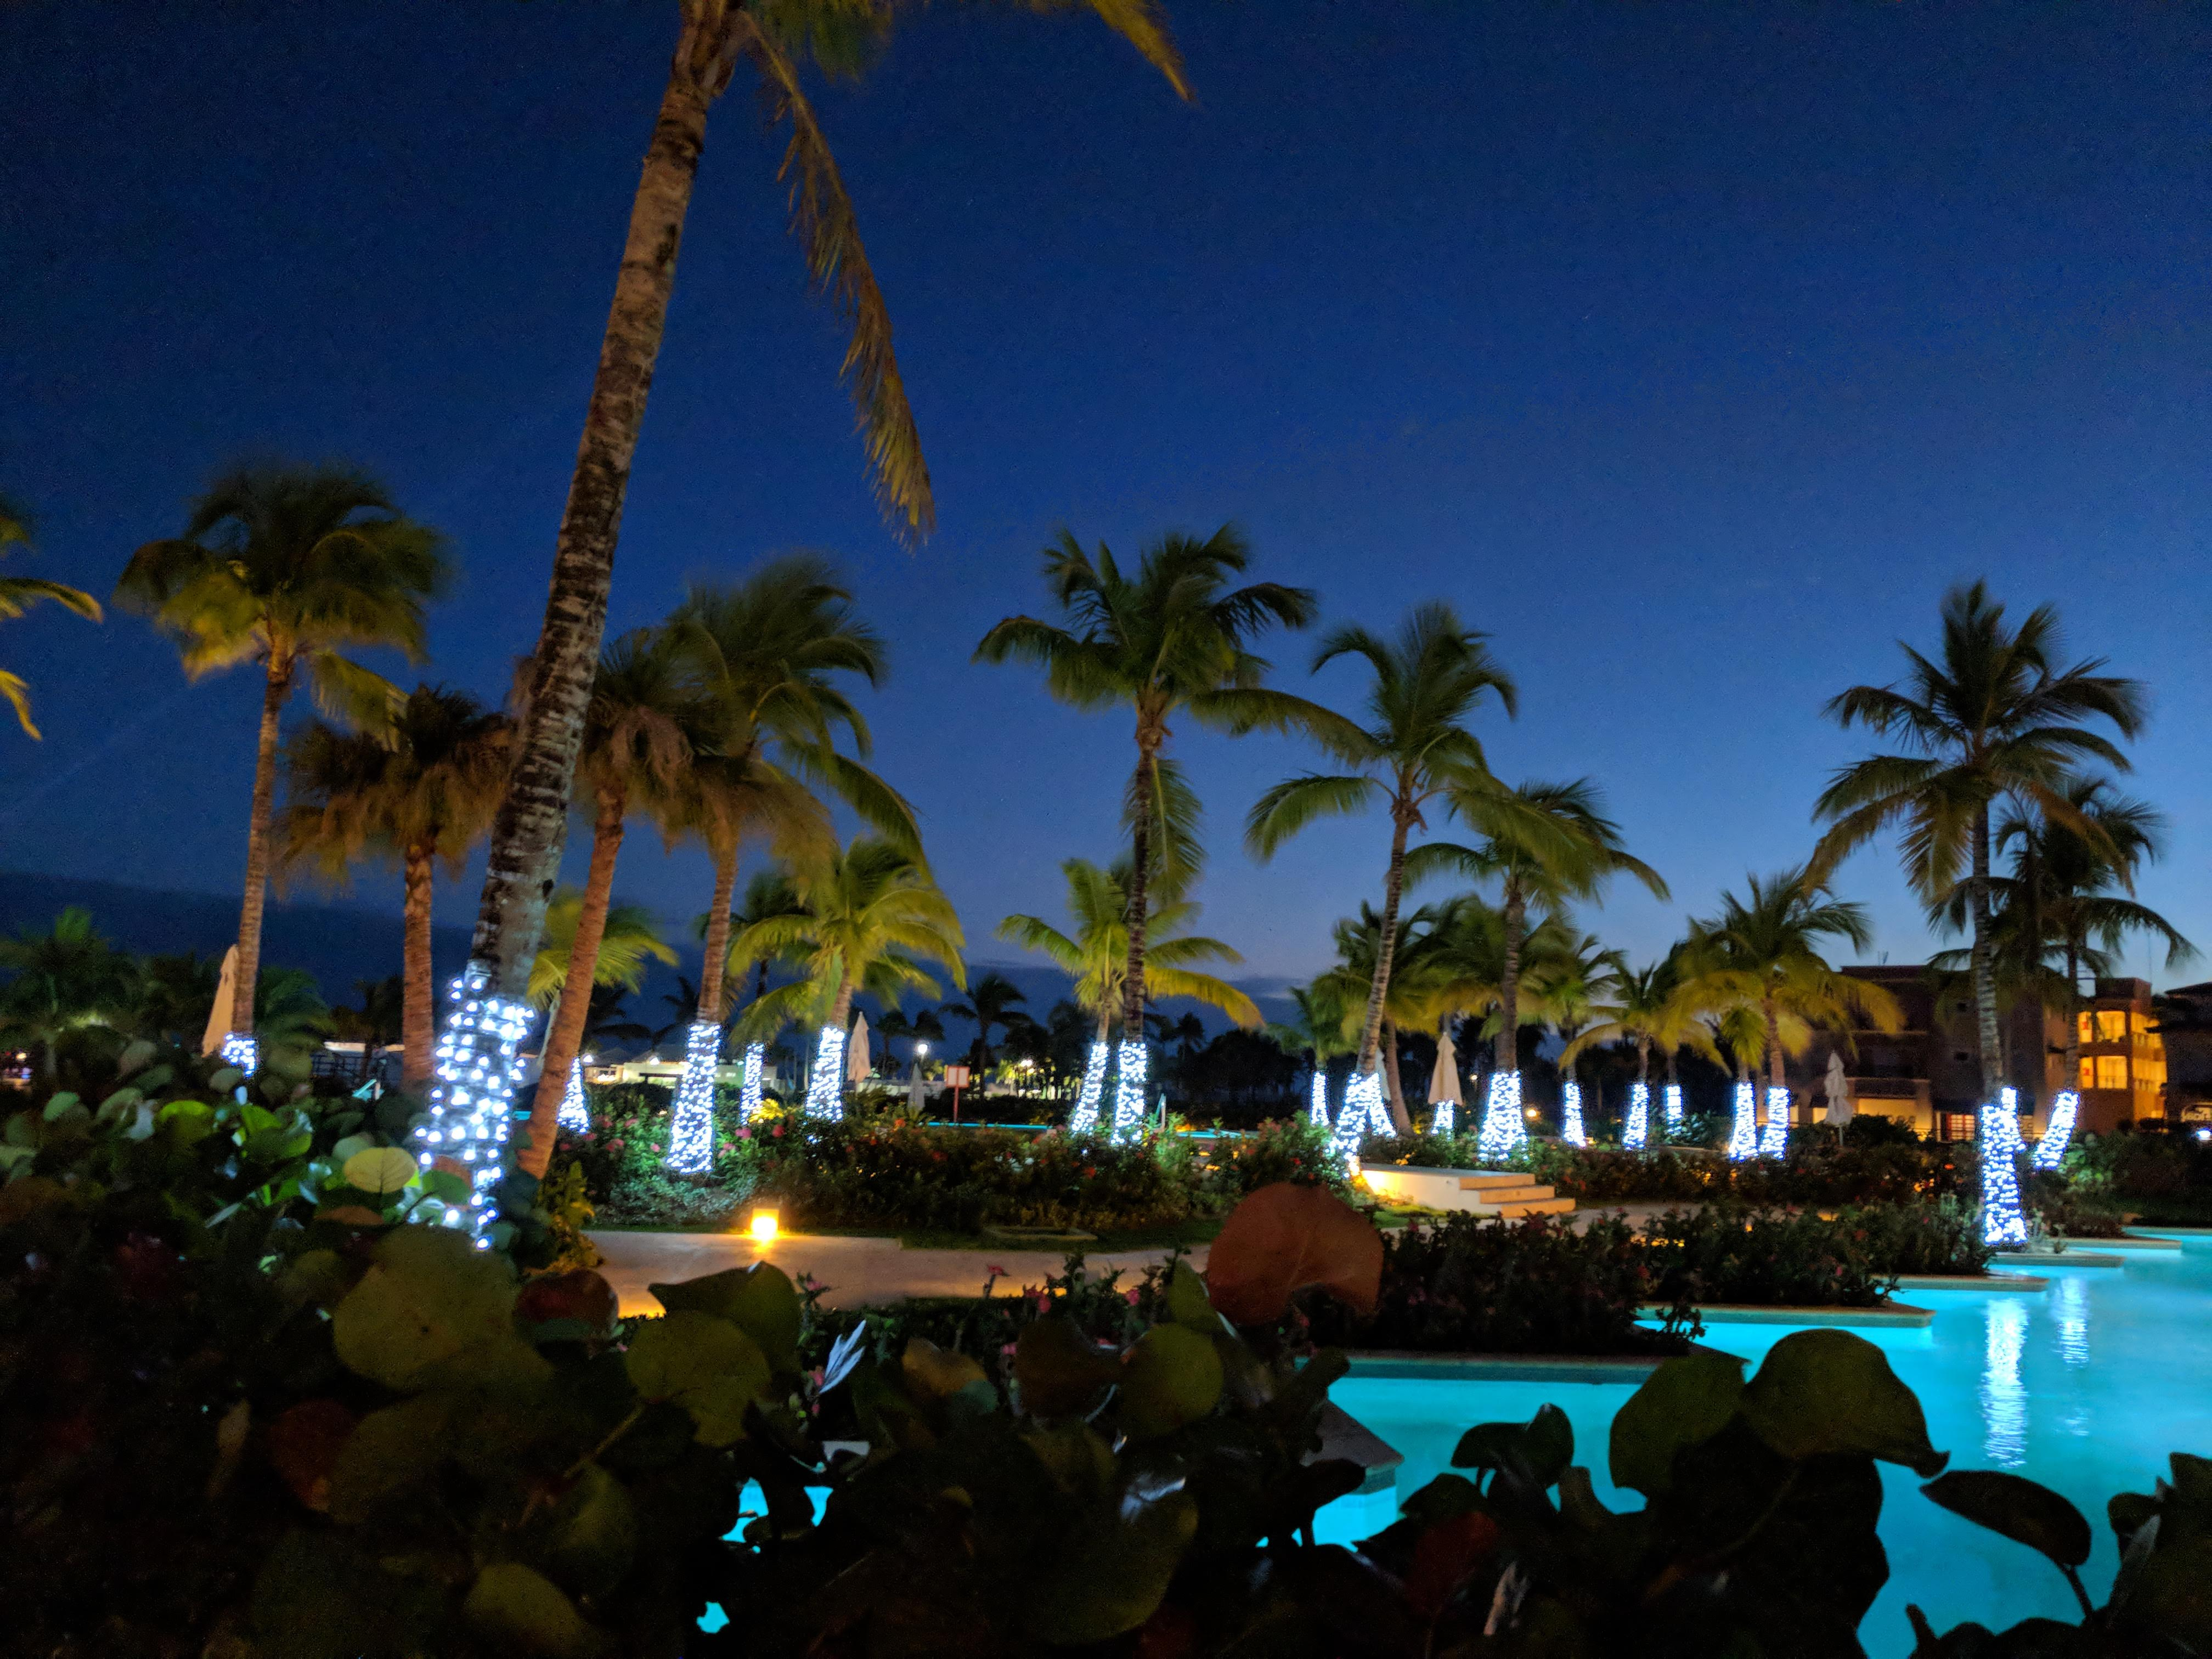 A Stunning View of the Resort